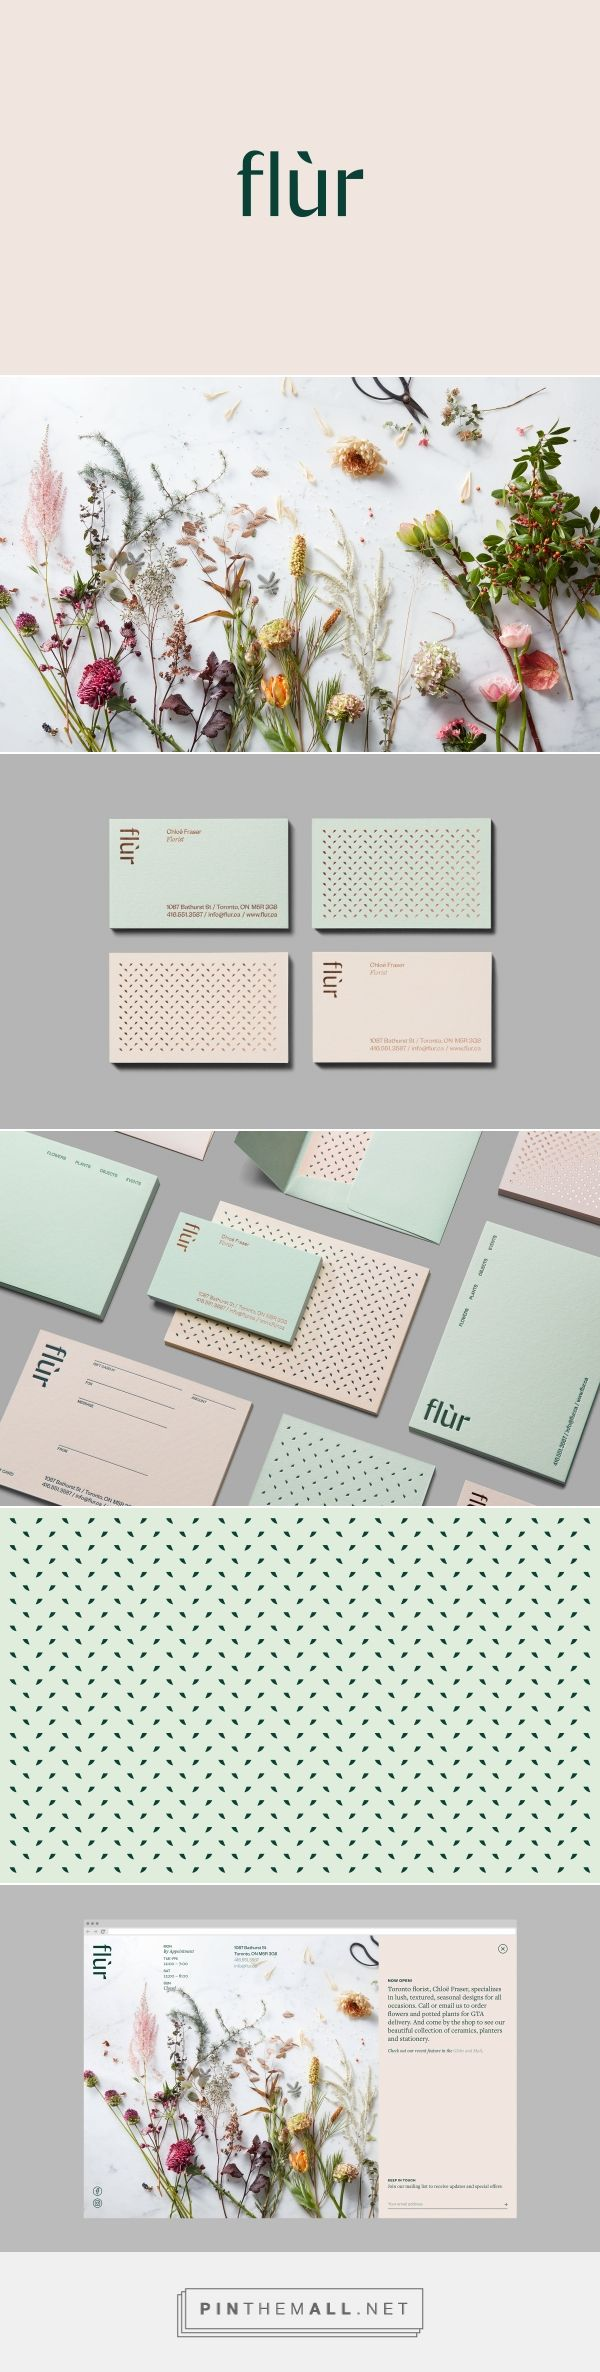 Flùr Boutique Flower Shop Branding by Made by Tung | Fivestar Branding Agency – Design and Branding Agency & Curated Inspiration Gallery #florist #floristbranding #branding #design #designinspiration